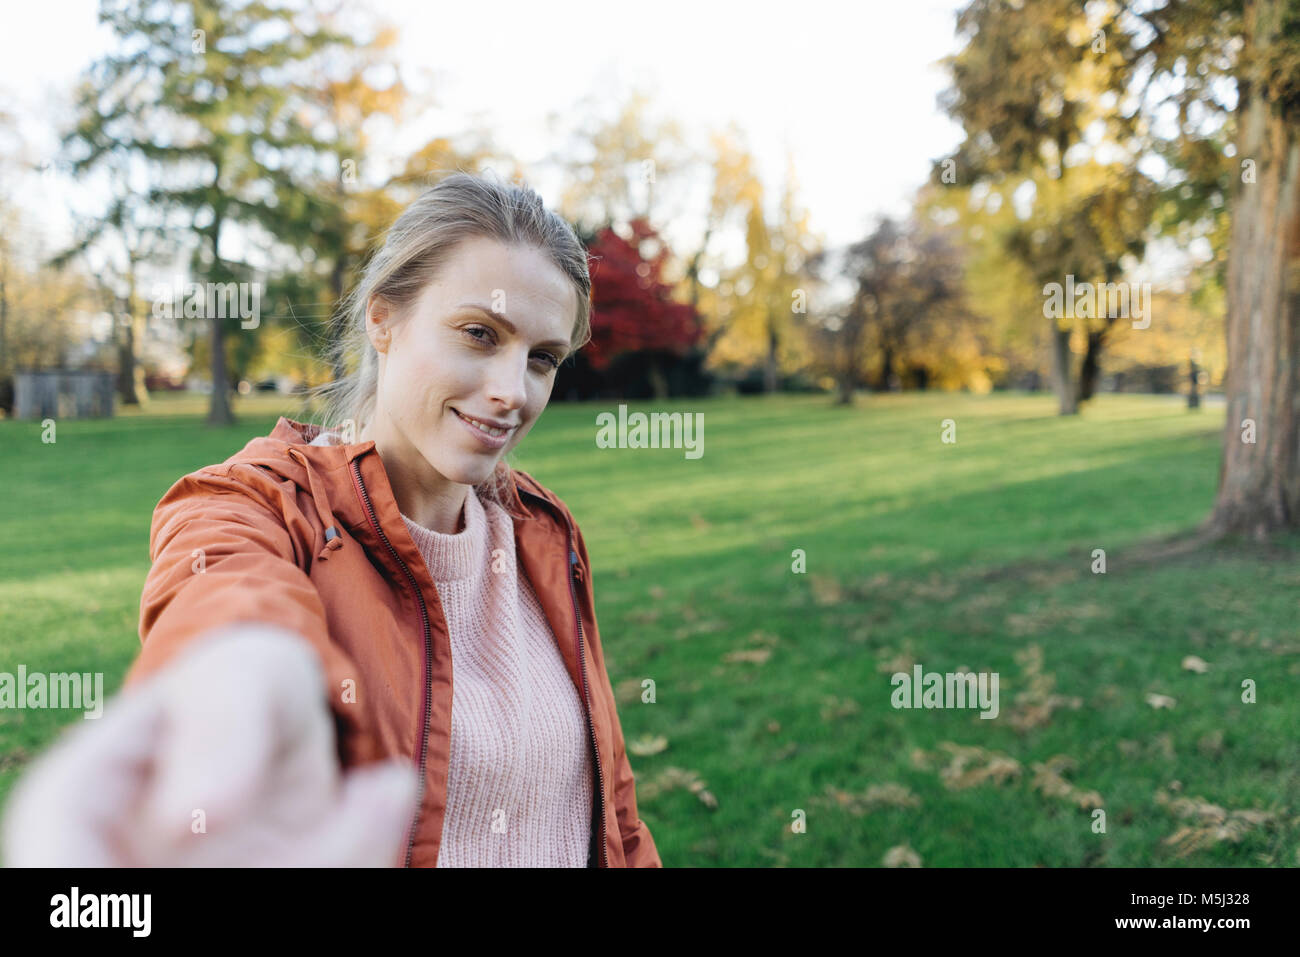 Portrait of young woman reaching out hand in autumnal park - Stock Image